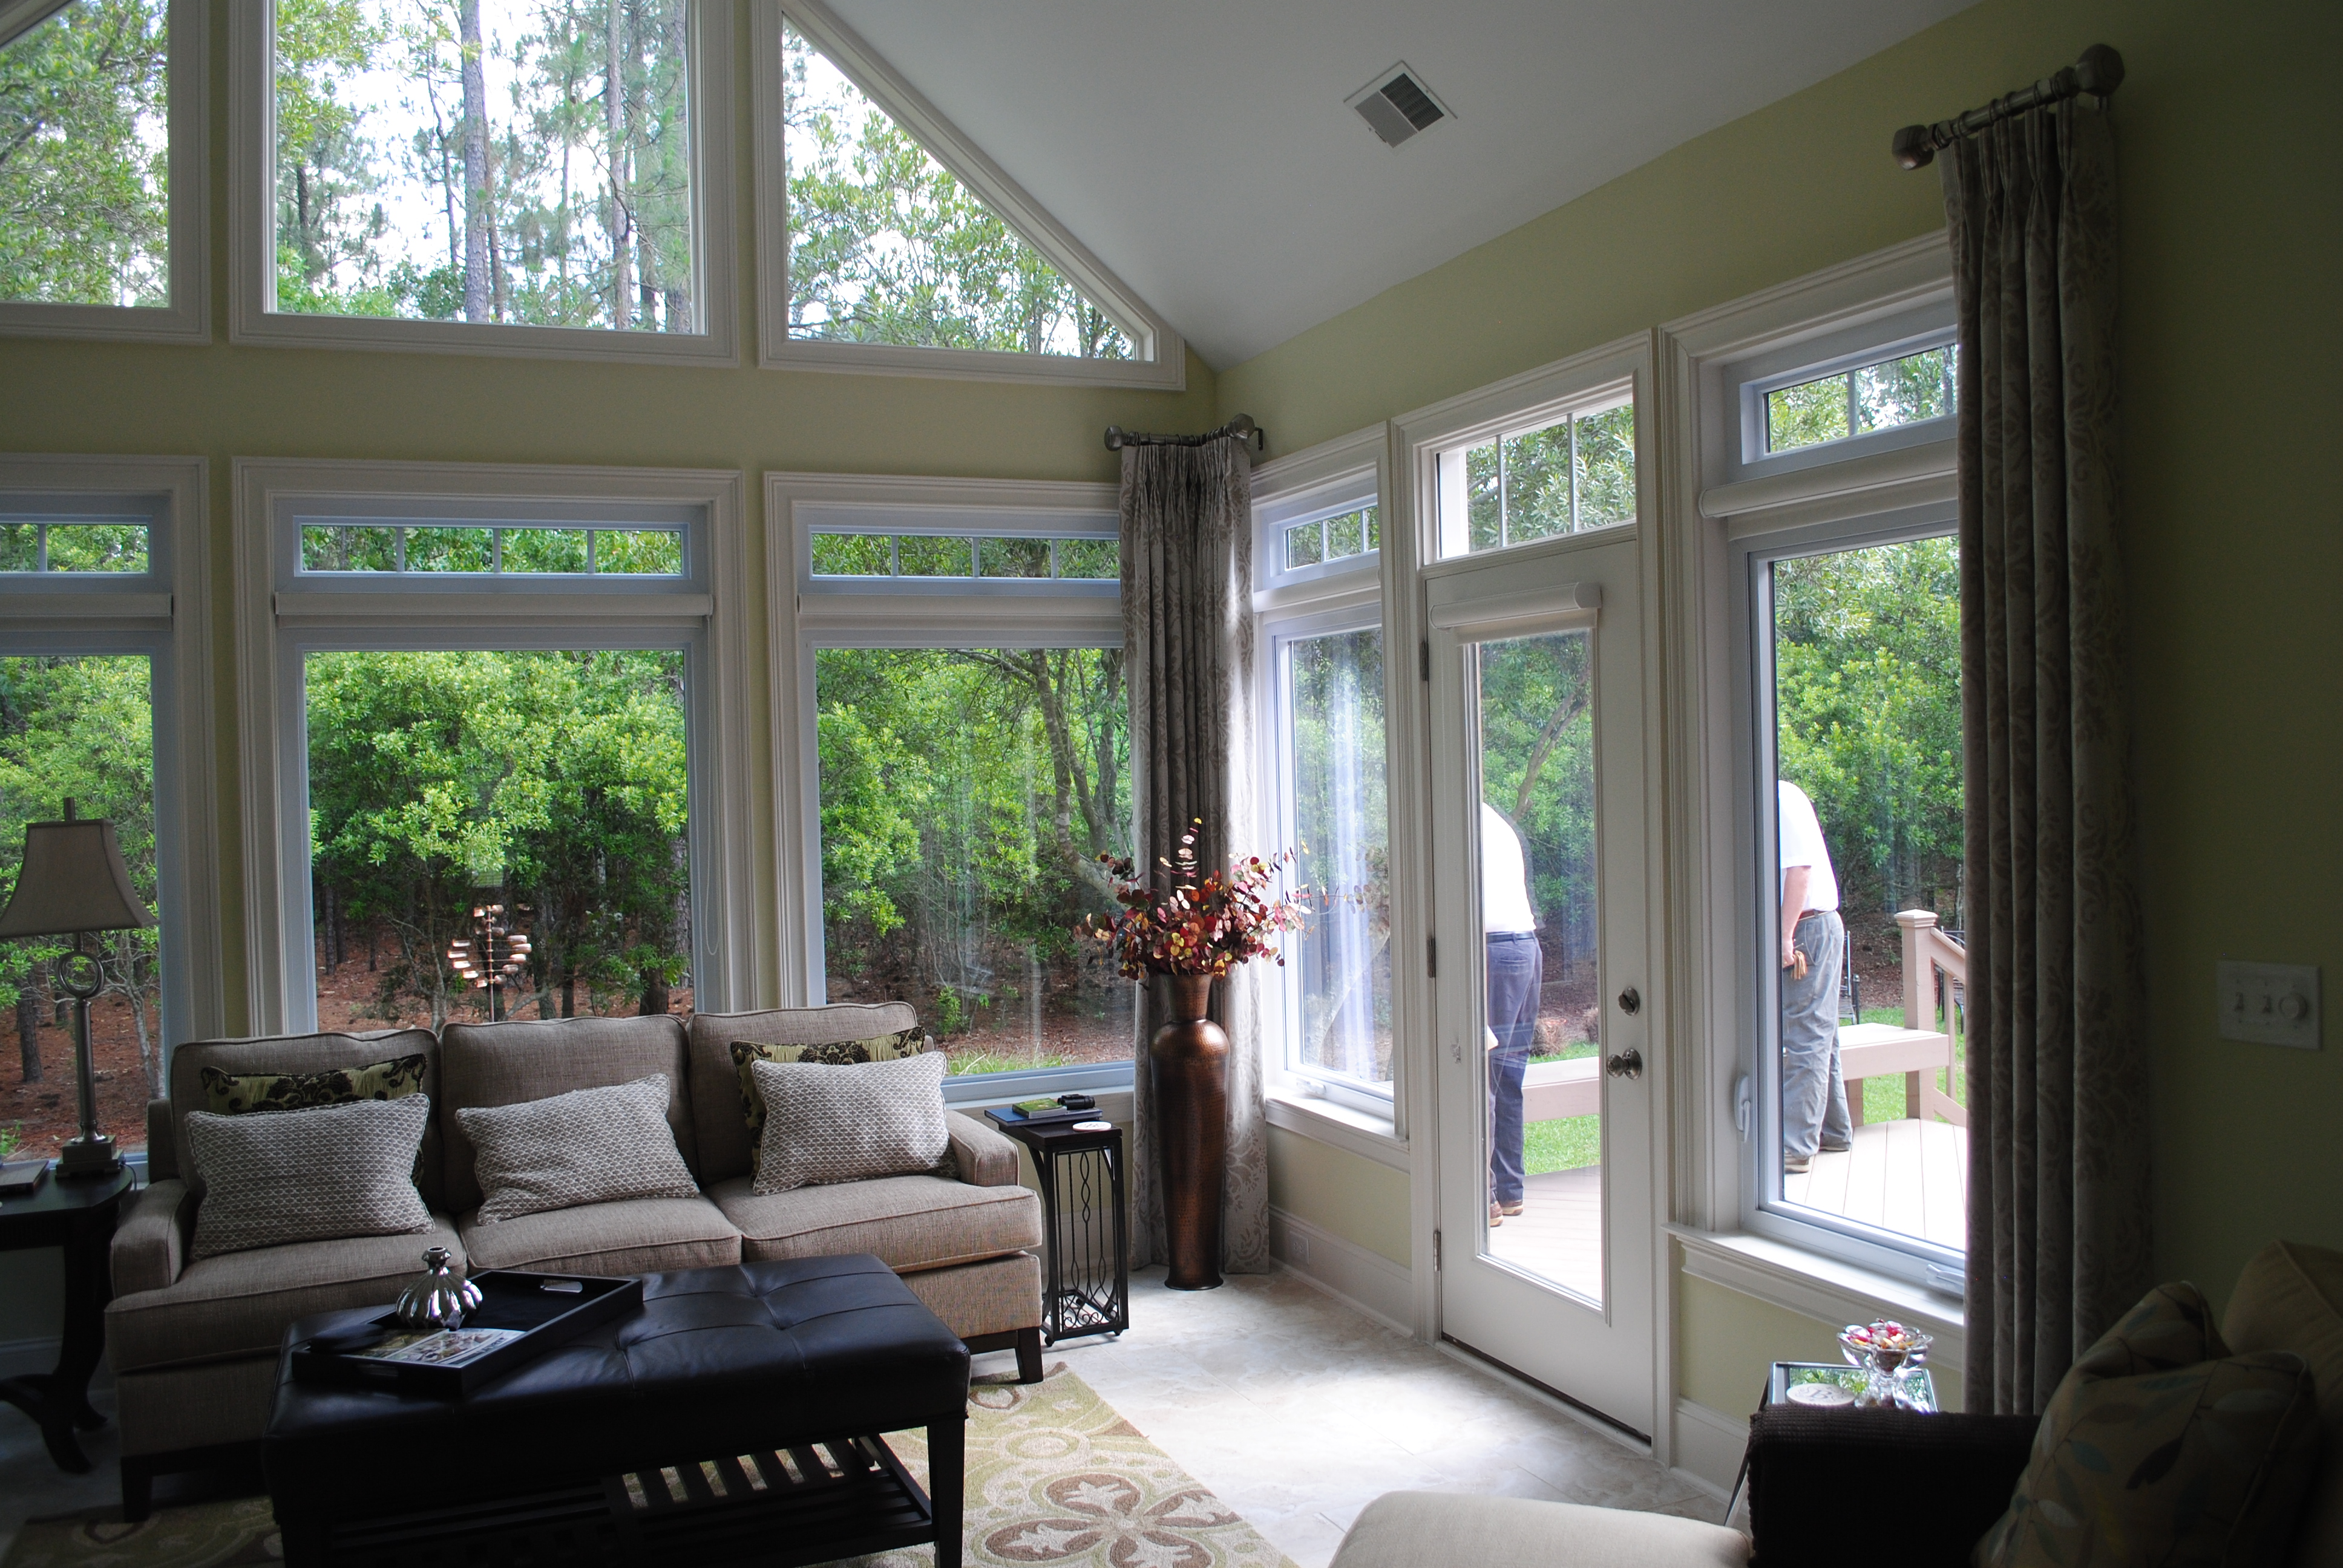 Amazing Create The Ultimate Playroom In Your Family Room U0026 Make The Sunroom An  Adult Entertaining Area.